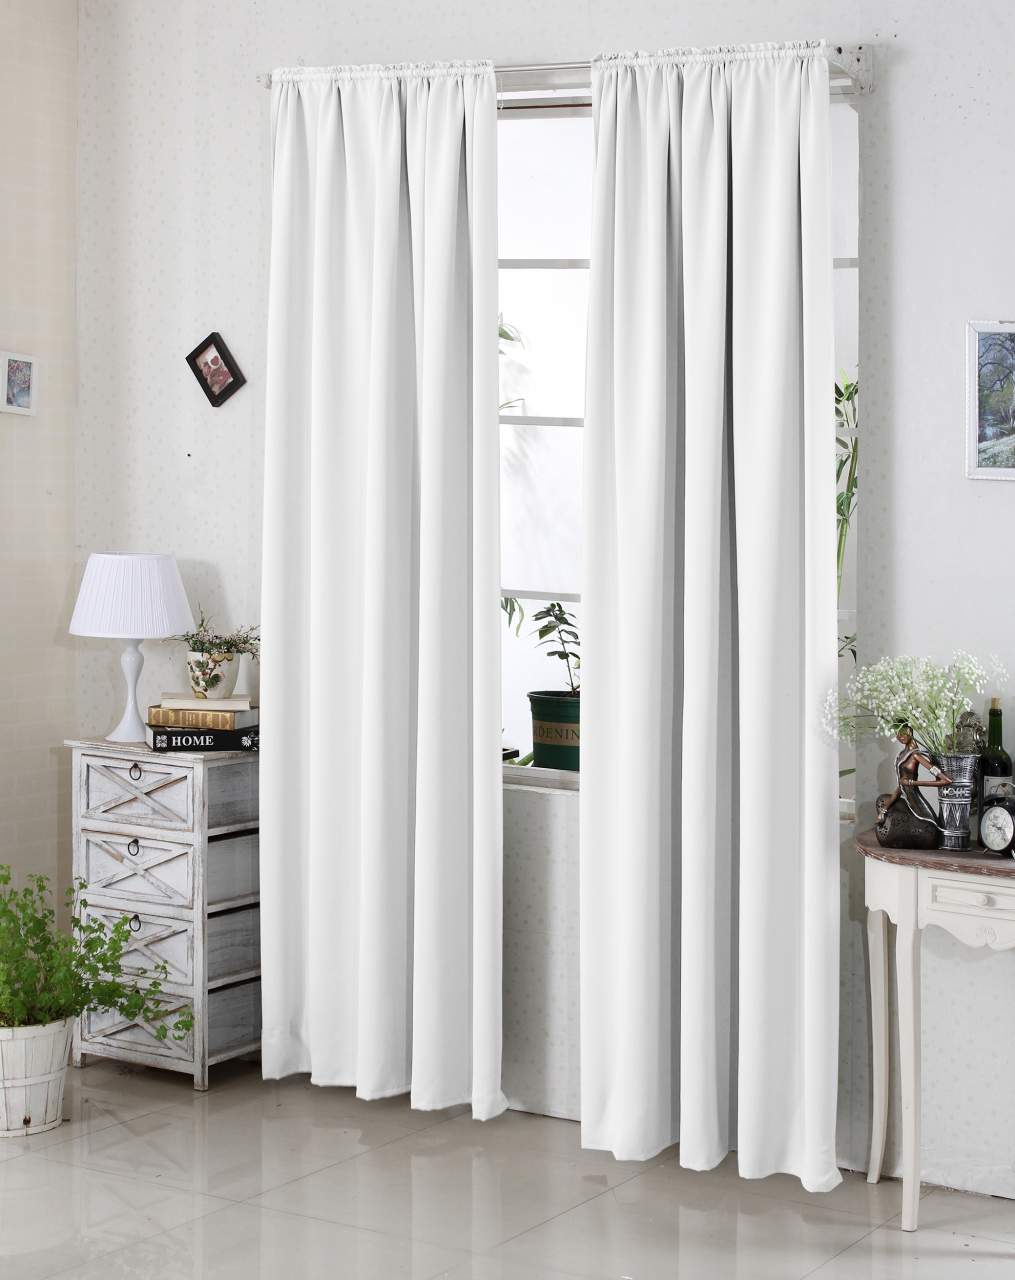 Curtains Pencil Pleat Blackout Curtains Thermal Insulated Tape Top Curtain Panels For Bedroom Woltu Eu